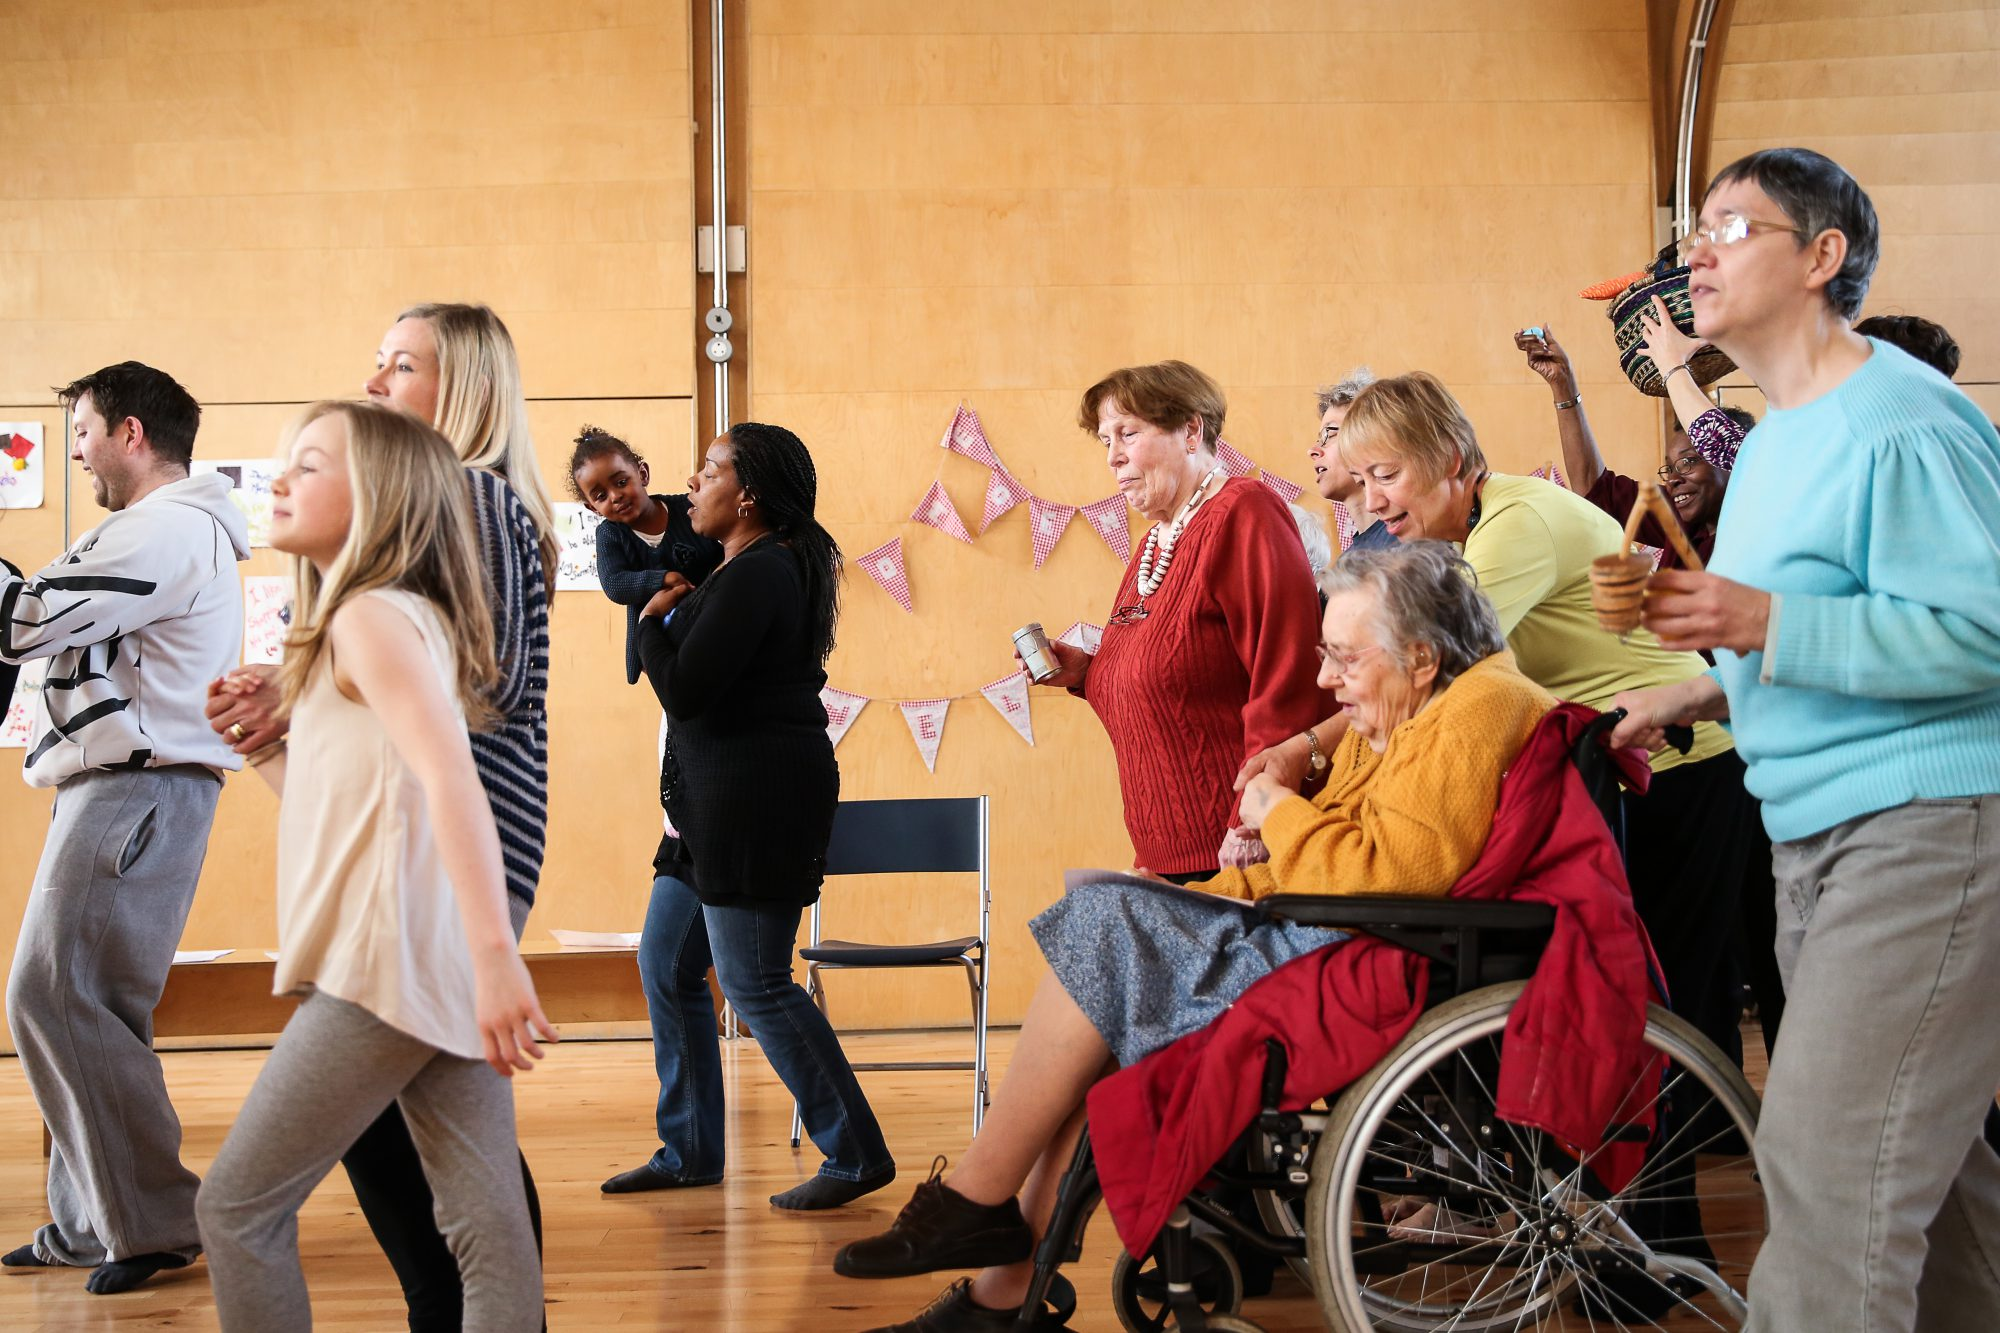 younger and older participants moving in one direction in a hall